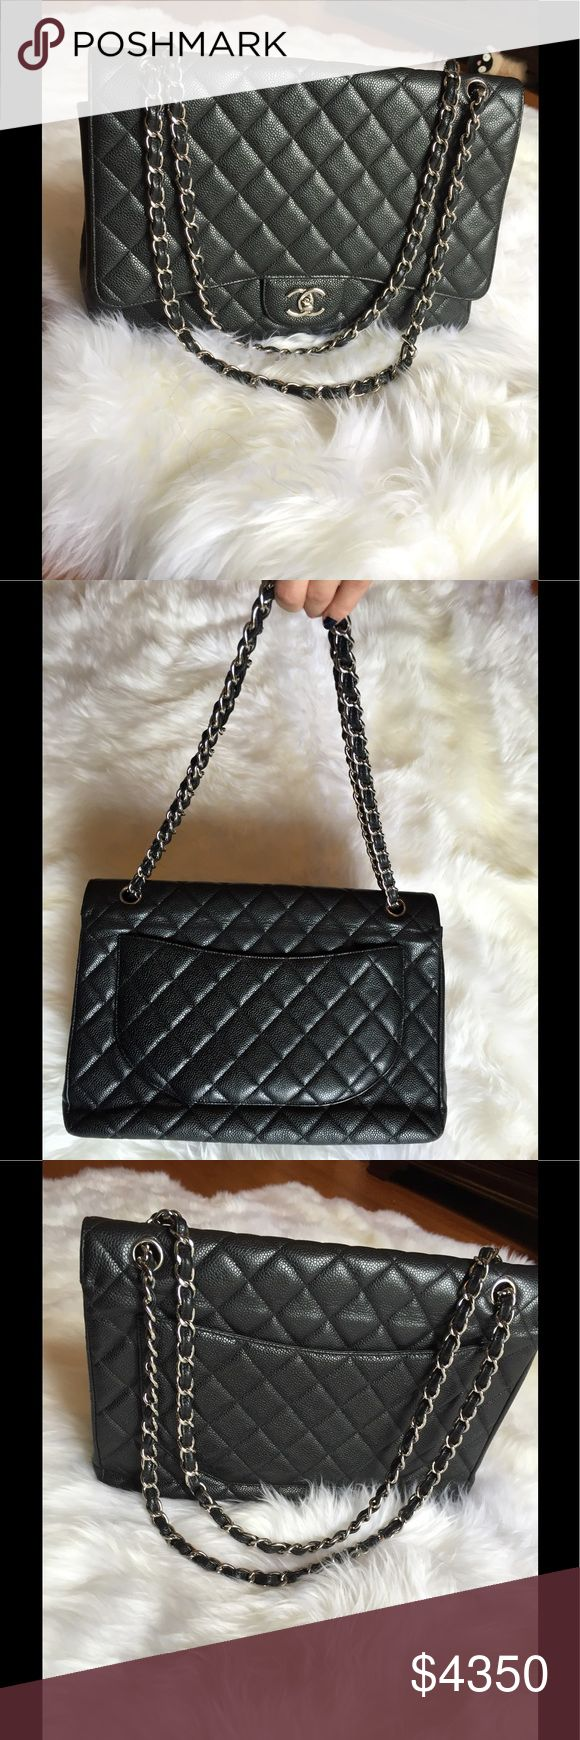 Authentic Chanel single flap bag Pre loved in great condition.Come with dust bag and authenticity card.No box.Maxi single flap bag.Price is firm. CHANEL Bags Shoulder Bags